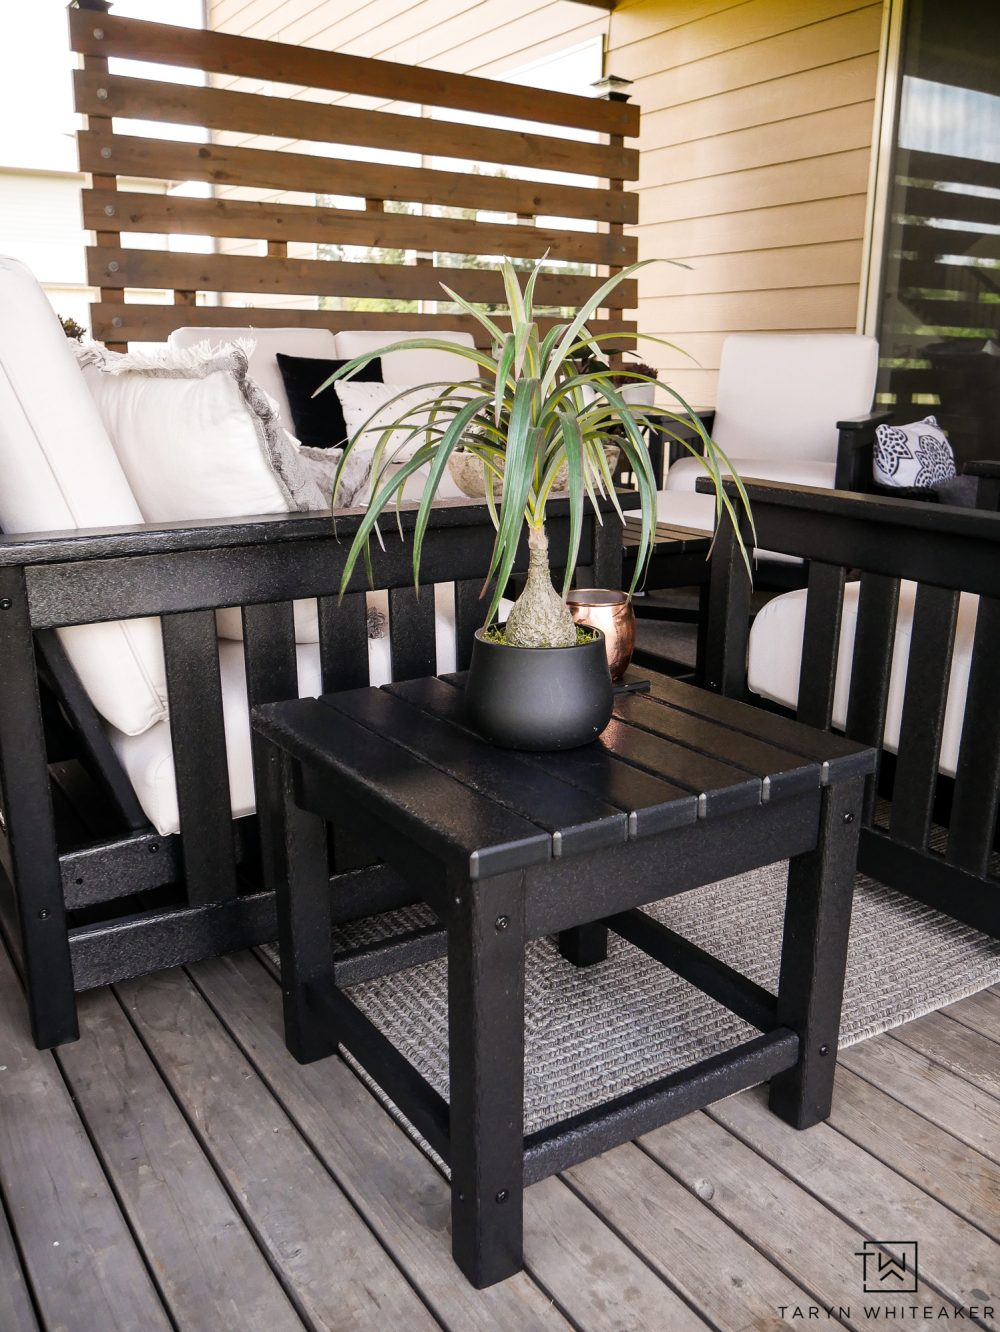 Black patio furniture with matching end tables.